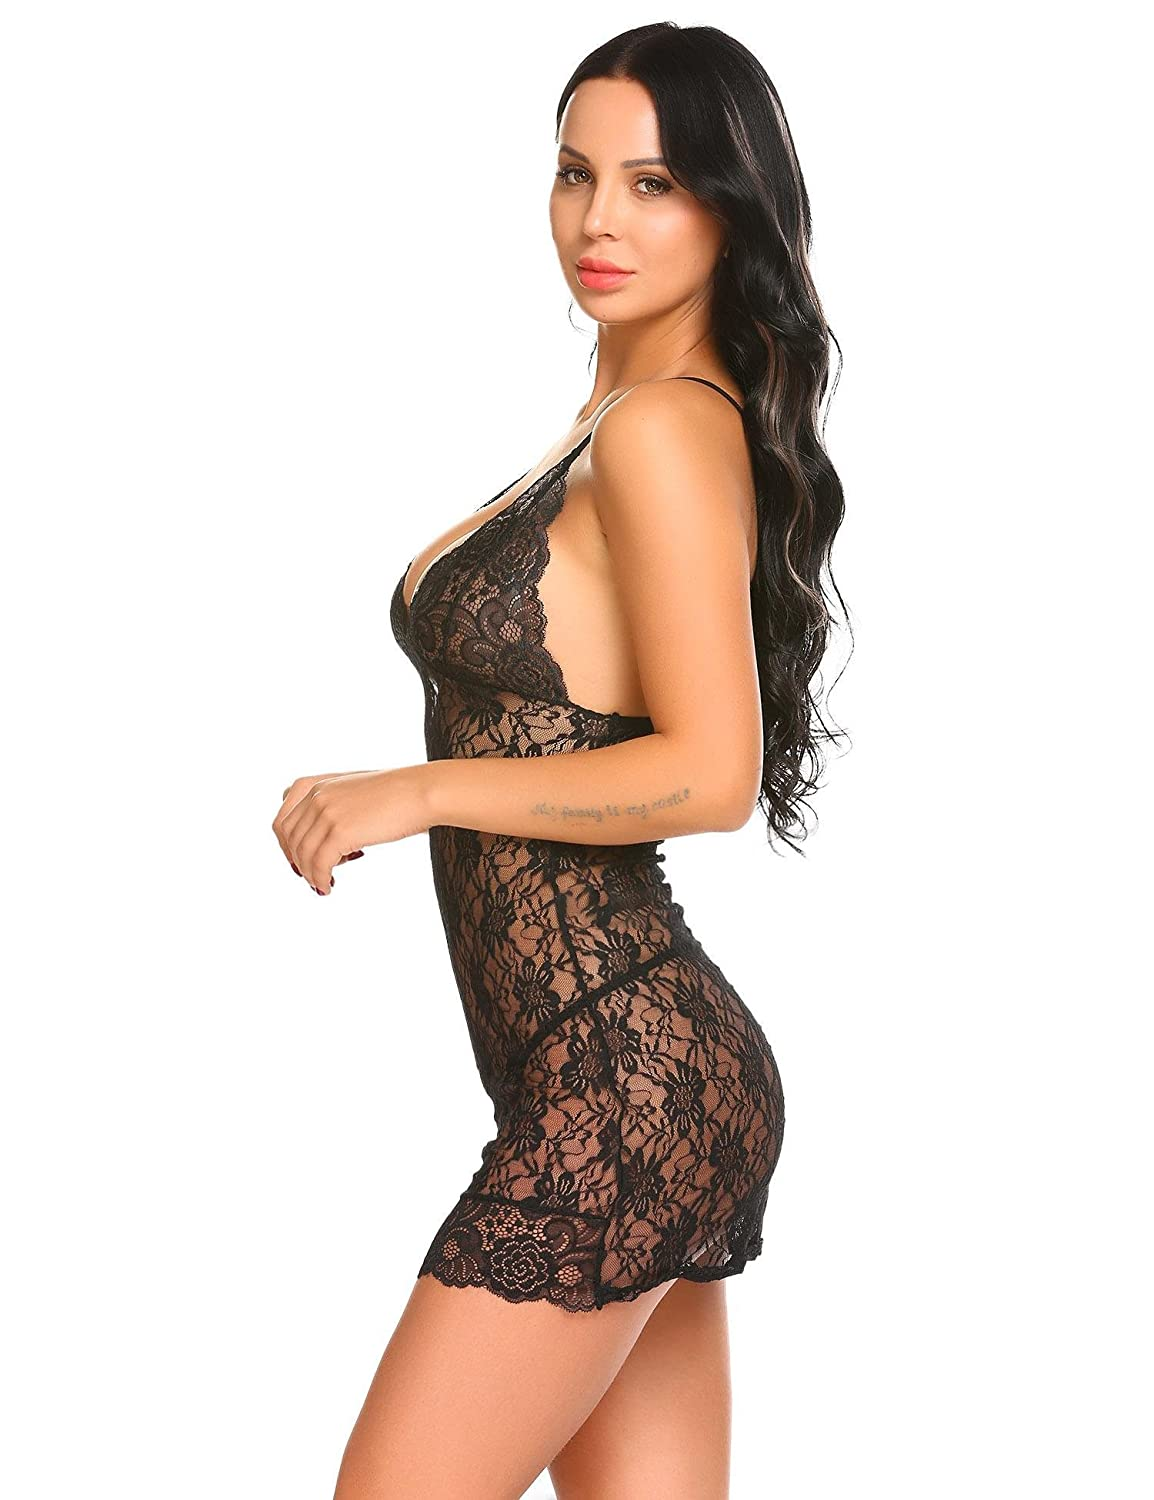 Dongba Women Sexy Lingerie Set Lace Sheer Nightwear Chemise for Valentine s  Day Gift at Amazon Women s Clothing store  db33541a7